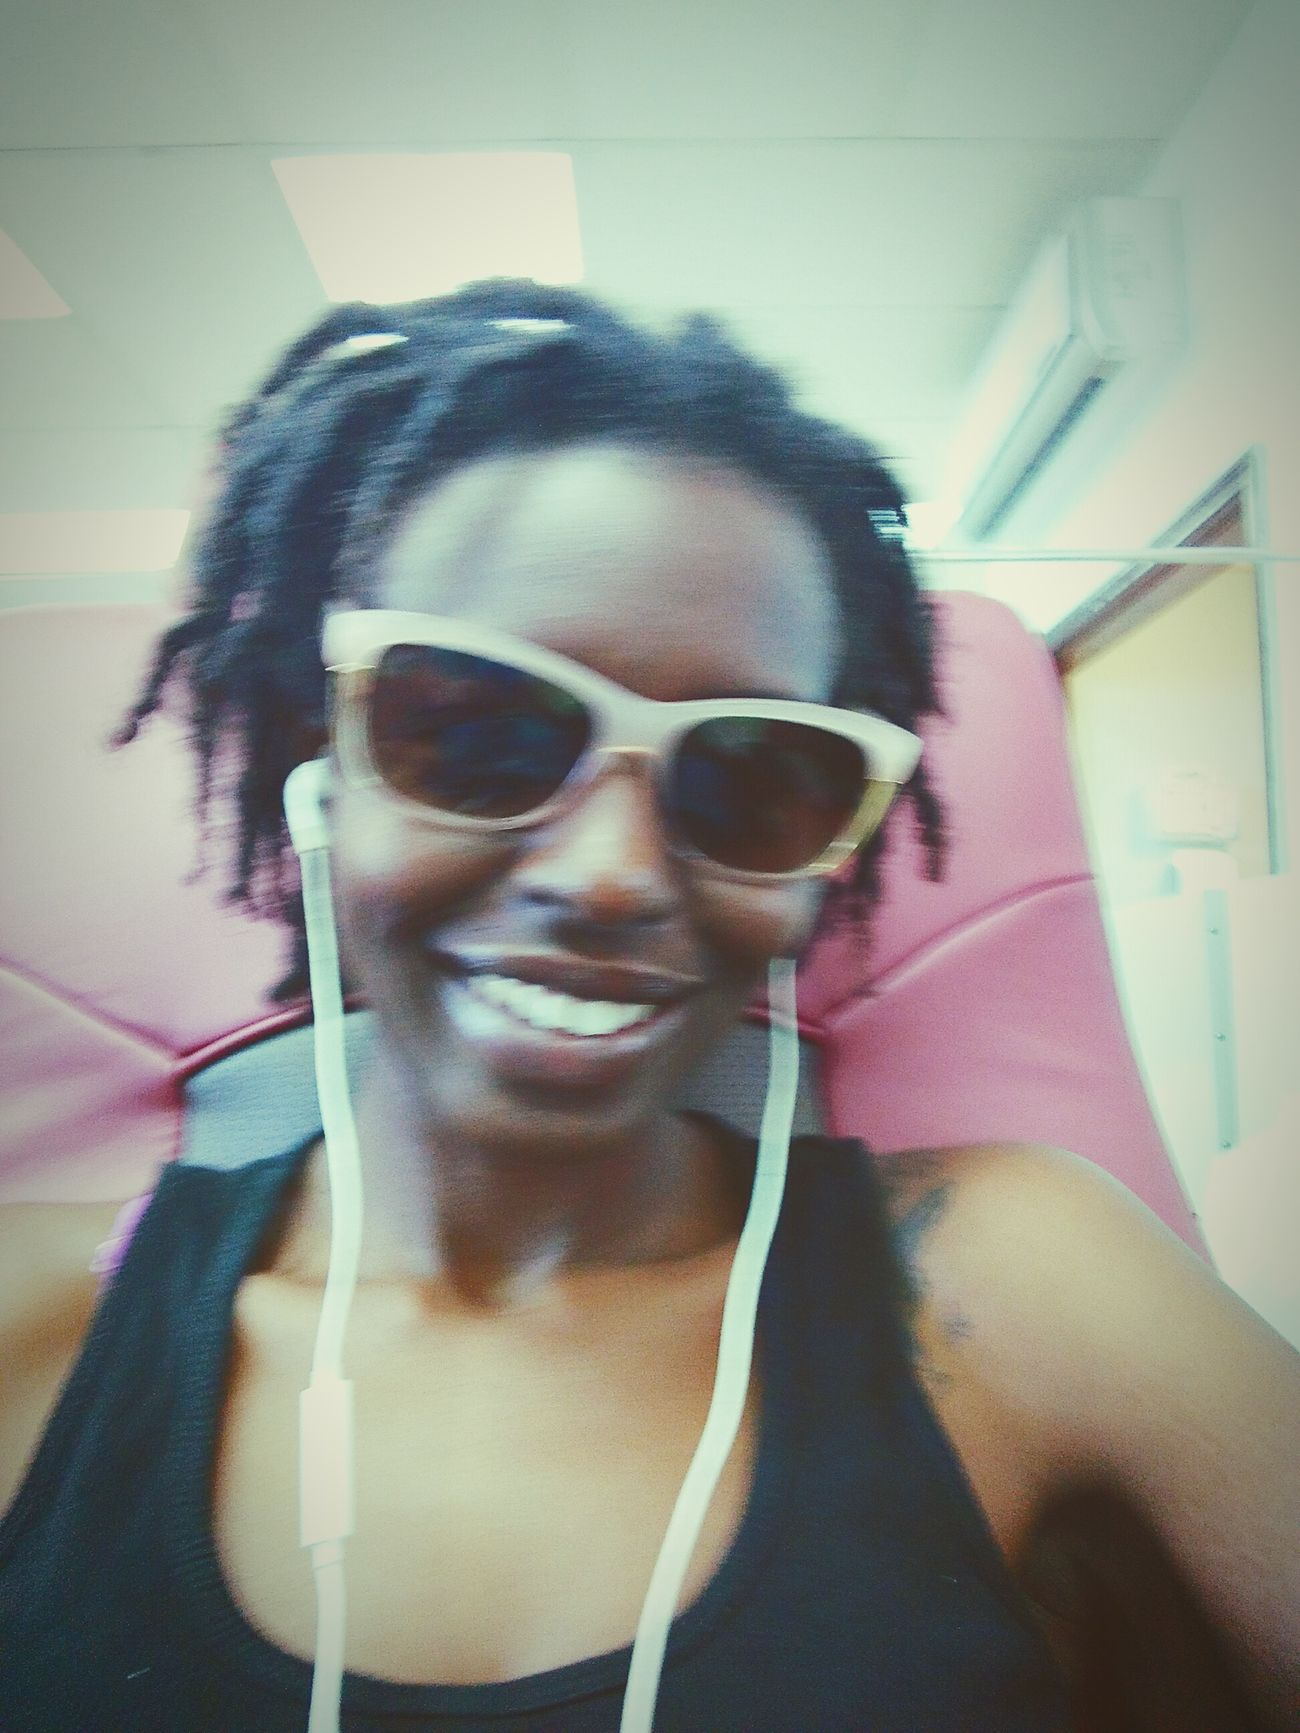 Pampering in full effect.... Hands and Feet Spa Day  Enjoying Life Selfie ✌ Cheese! Myblackisbeautiful Natural Hair Dreadhead Pandora Flow Massagechair Foot Massage Florida Life Ft Lauderdale Lesbian